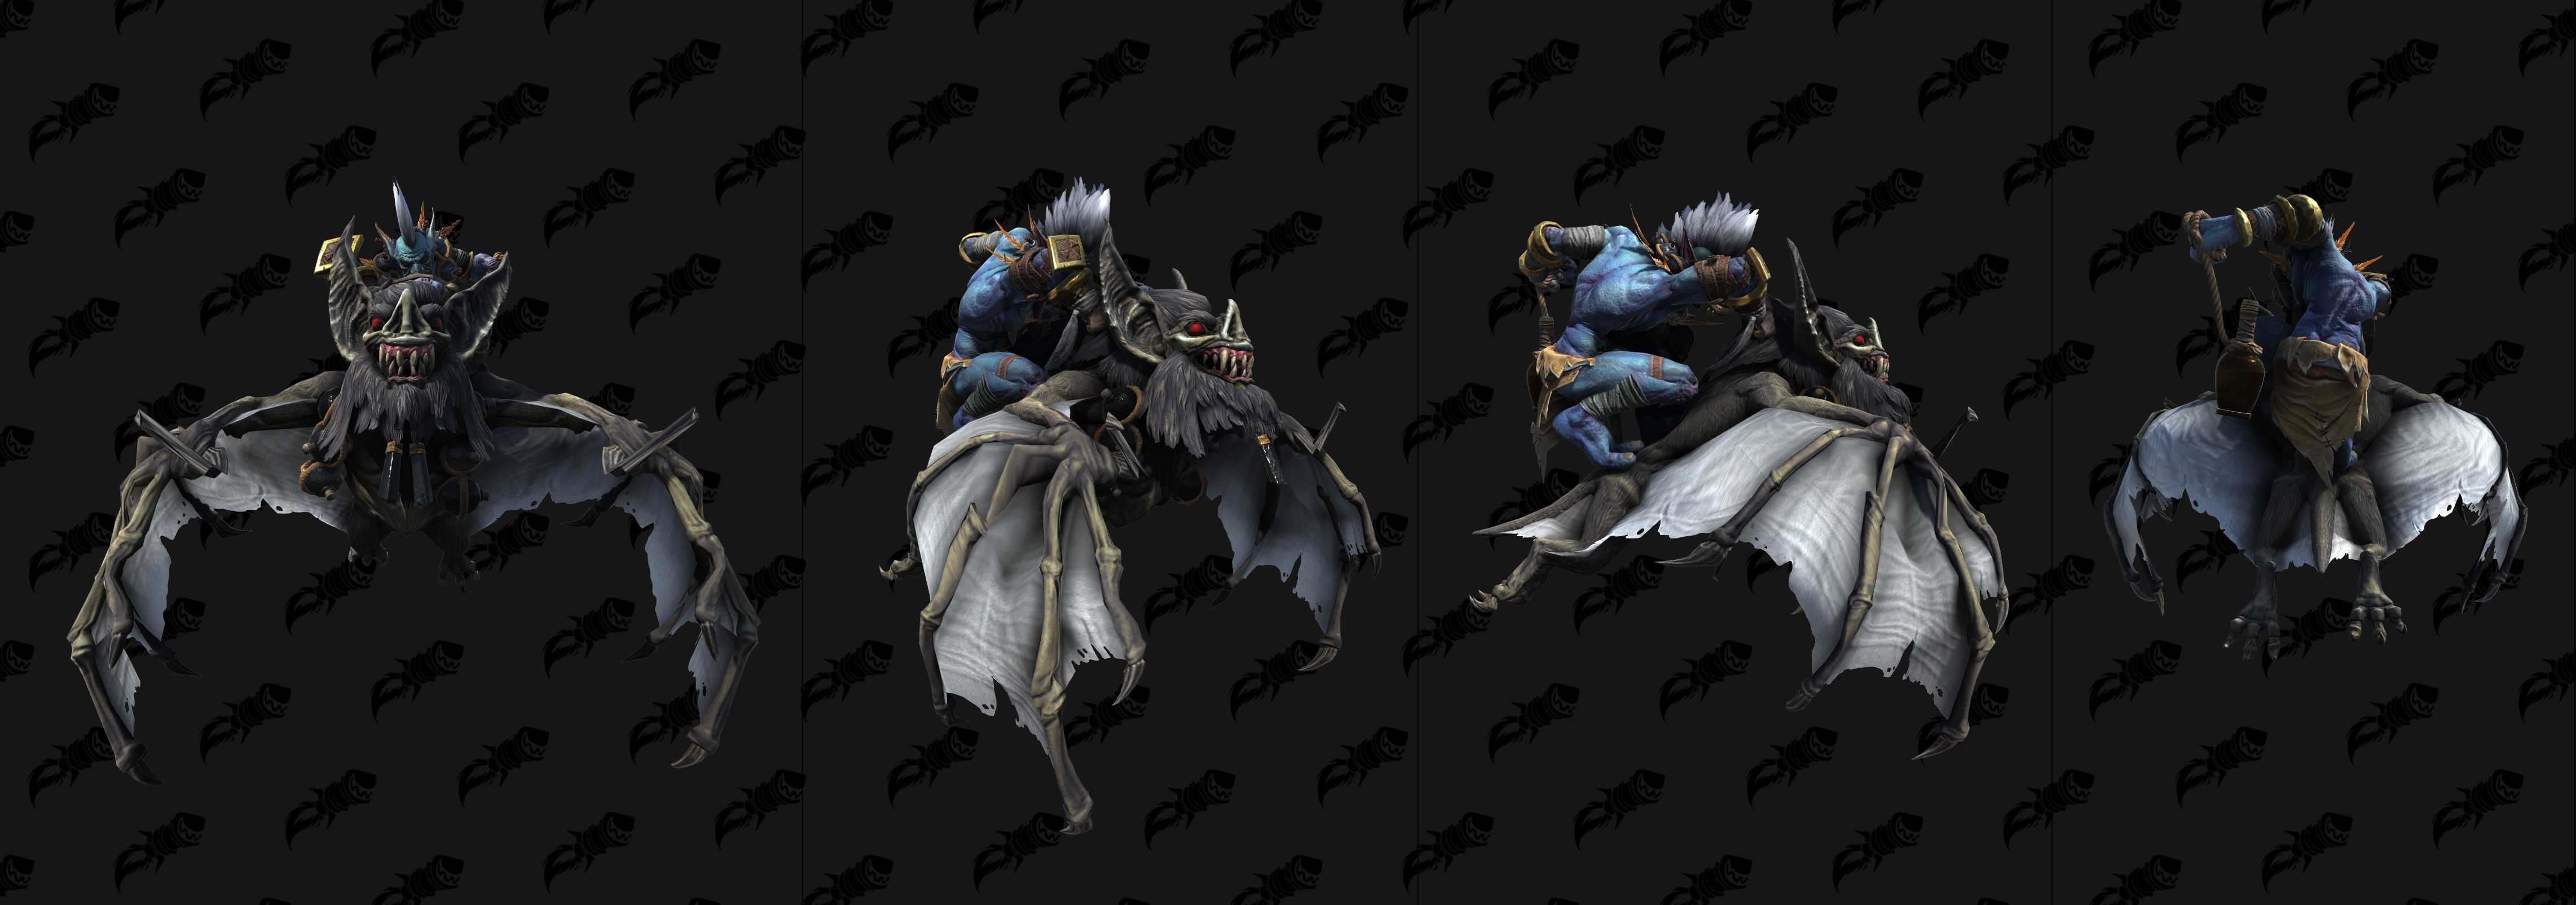 Warcraft Iii Reforged Models Orcs Playable And Special Units